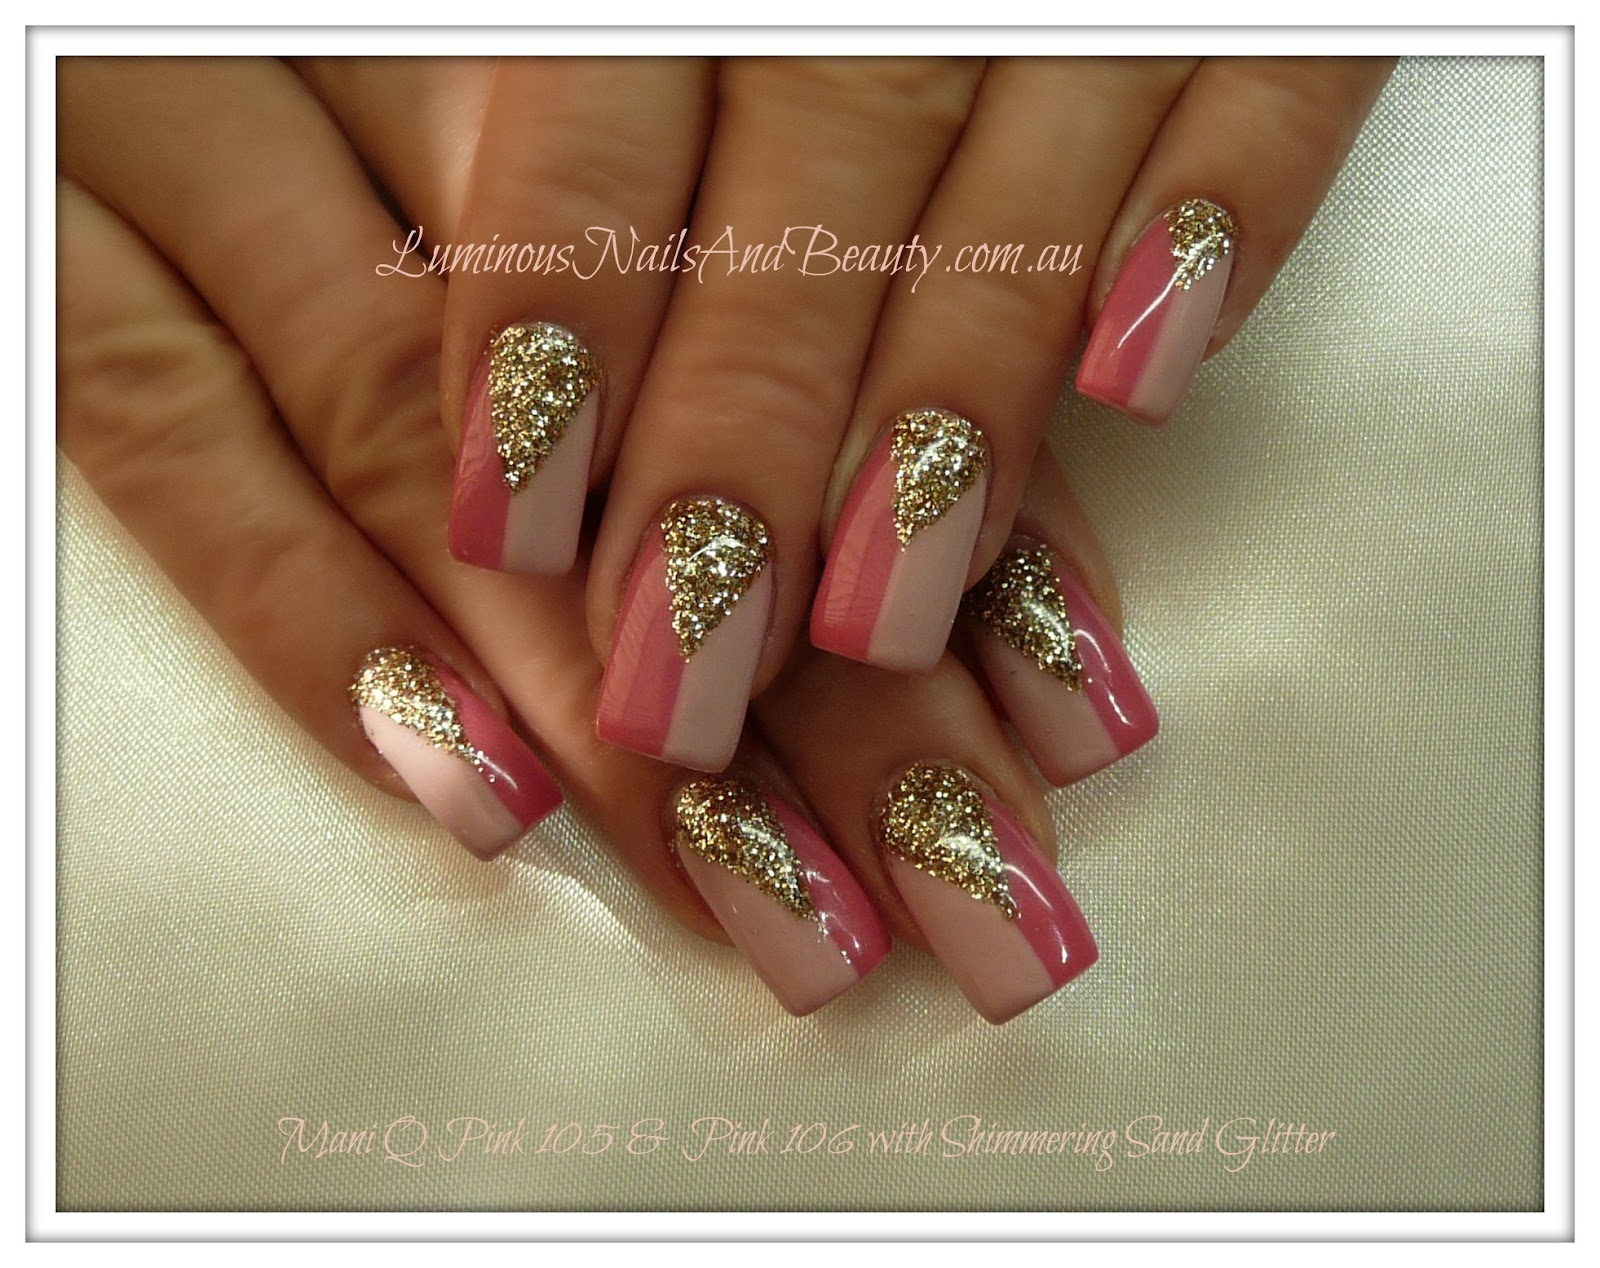 http://3.bp.blogspot.com/-u0nUu2YyI9o/T-KHRQE3IkI/AAAAAAAAAIc/_E-_KwwXDZ4/s1600/Luminous+Nails+And+Beauty,+Gold+Coast+Queensland,+Acrylic+Nails,+Gel+Nails,+Sculptured+Nails,+Mani+Q+Pink+105+&+106+with+shimmering+sand+glitter.jpg